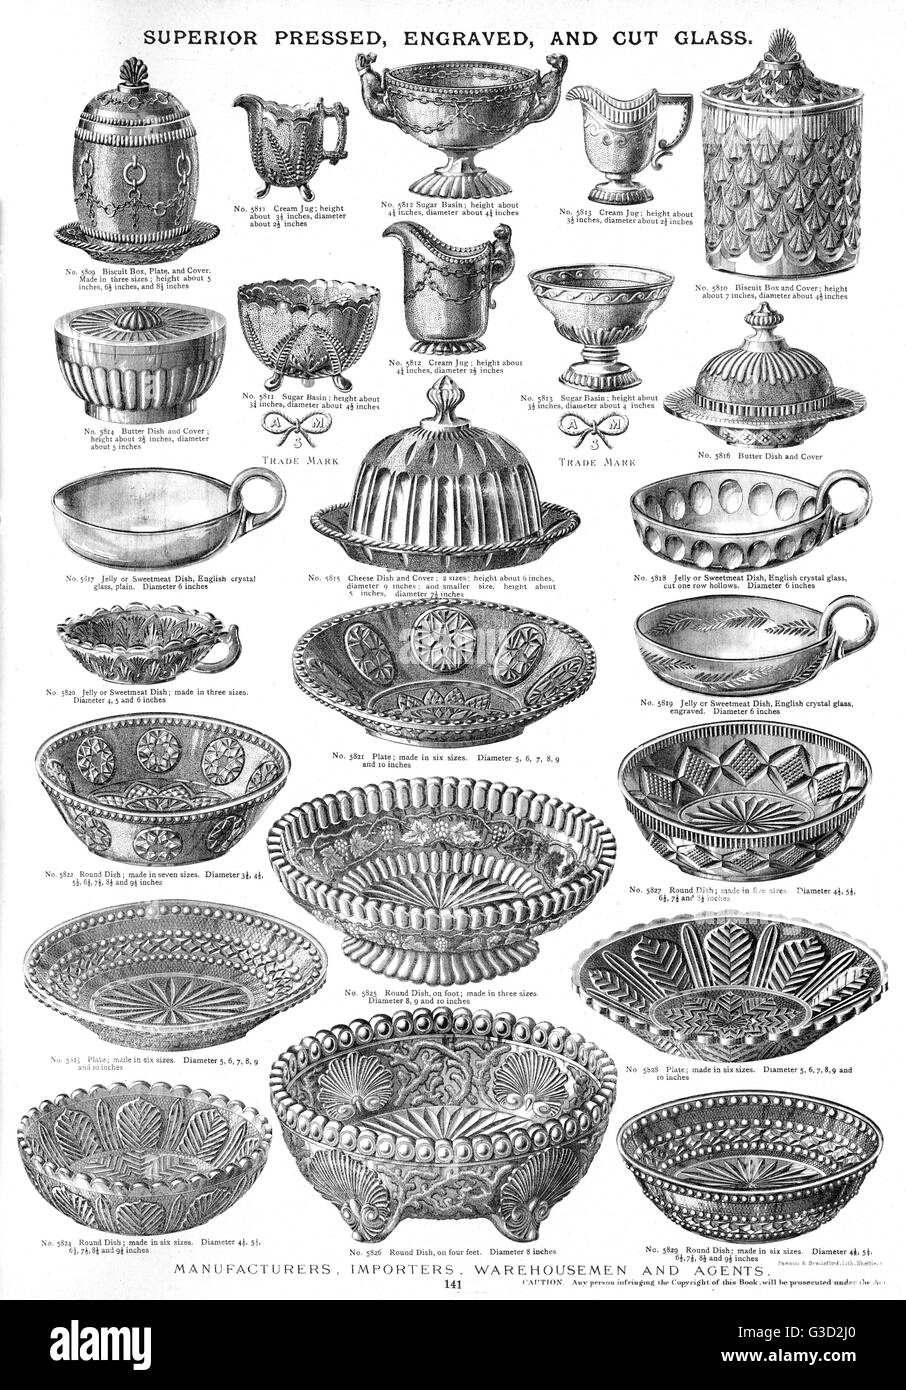 Superior Pressed, Engraved and Cut Glass, Plate 141, showing a range of jugs, basins, dishes, plates and containers - Stock Image